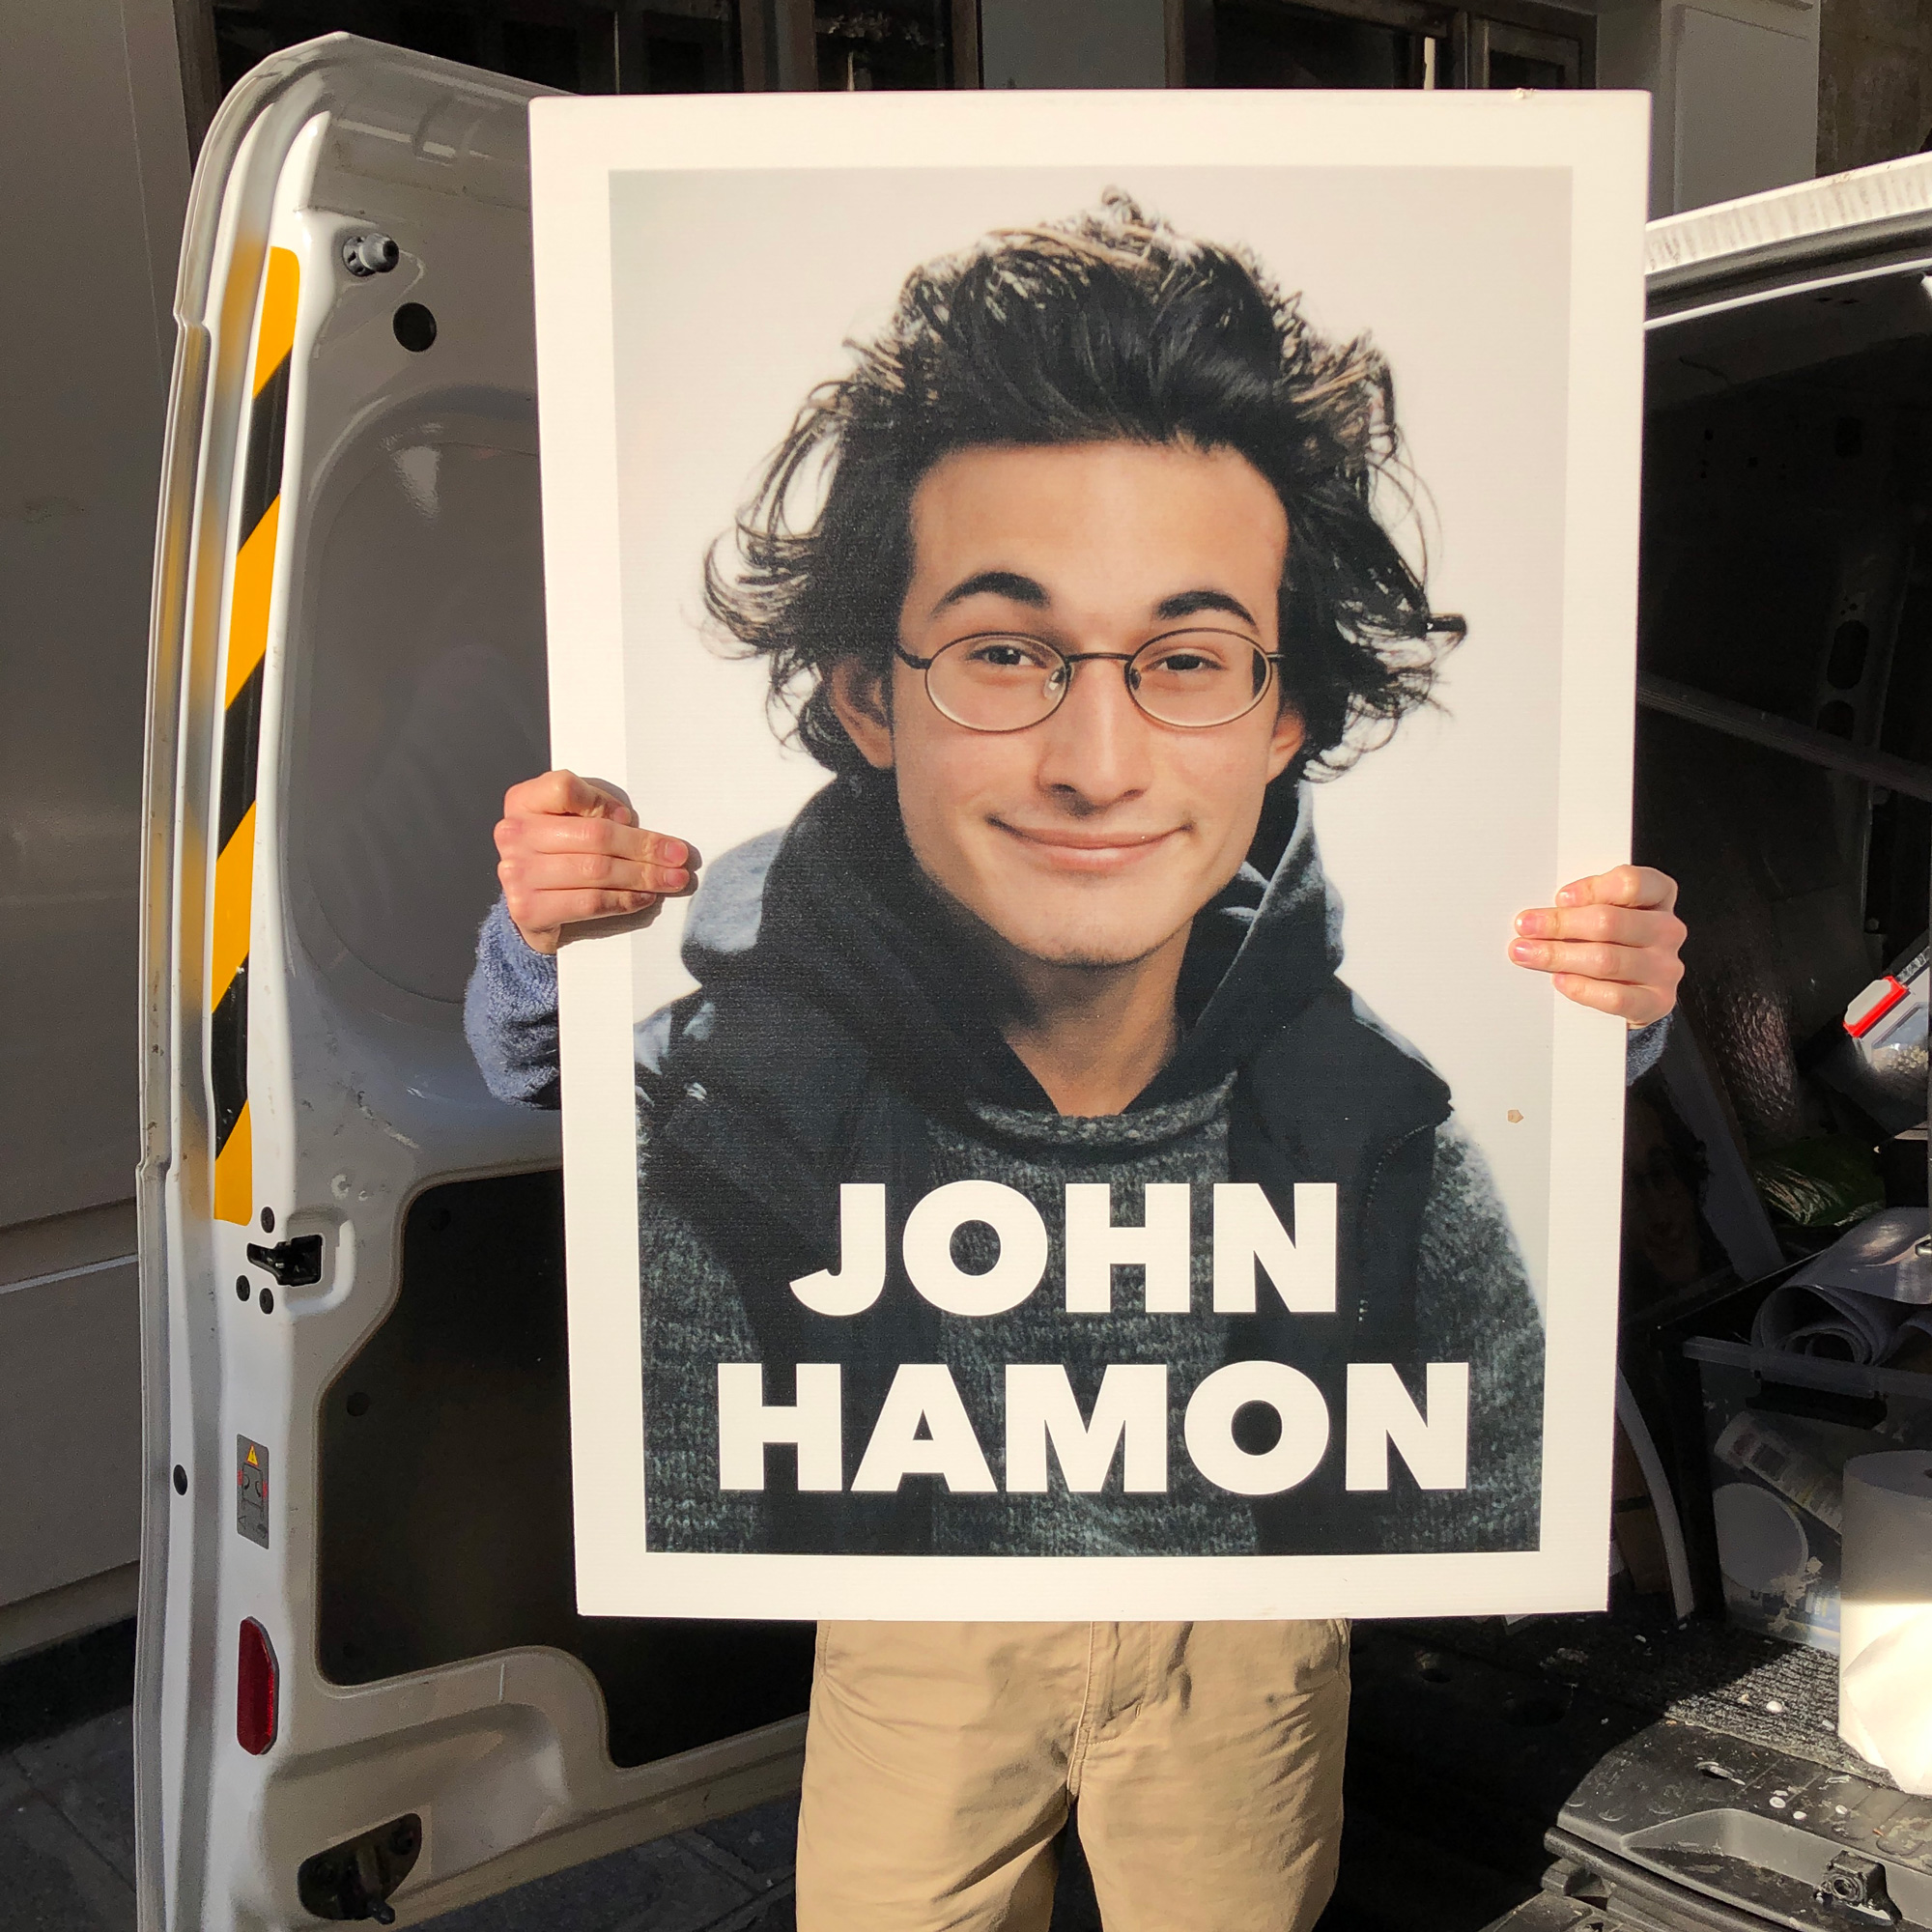 John Hamon, l'art promotionnel